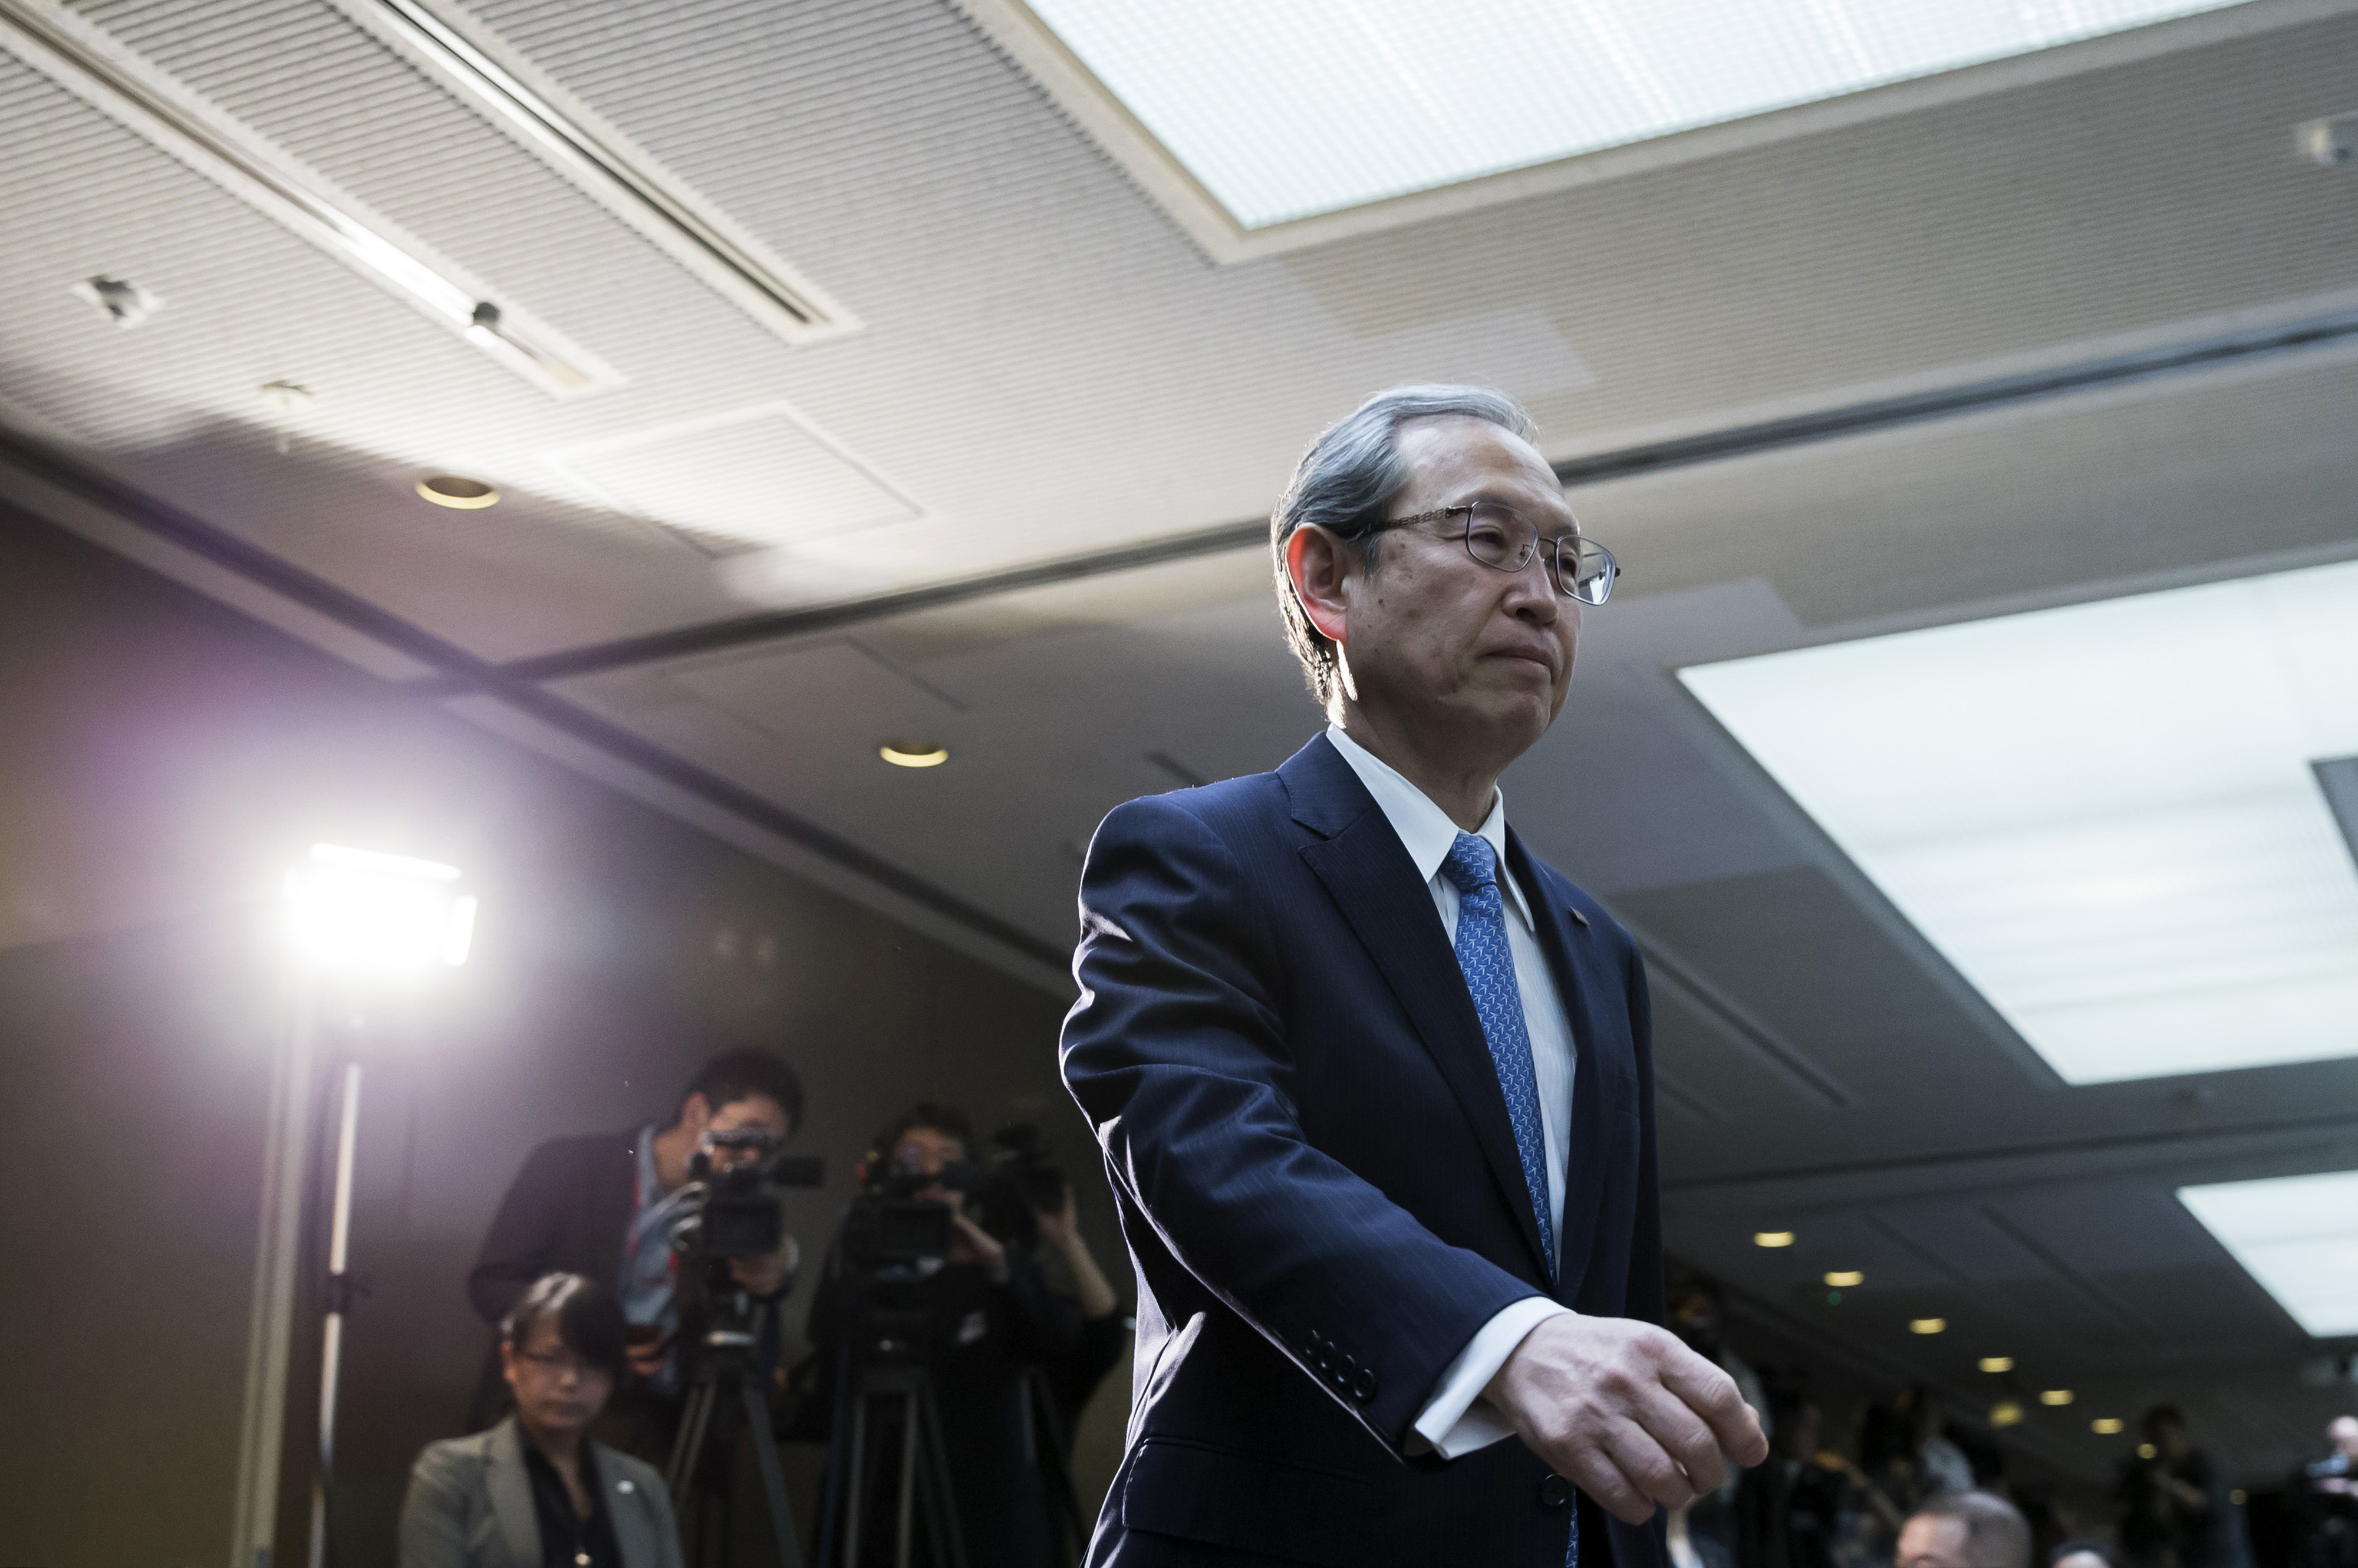 Toshiba Corp. News Conference As The Company Reports Delayed Earnings Results